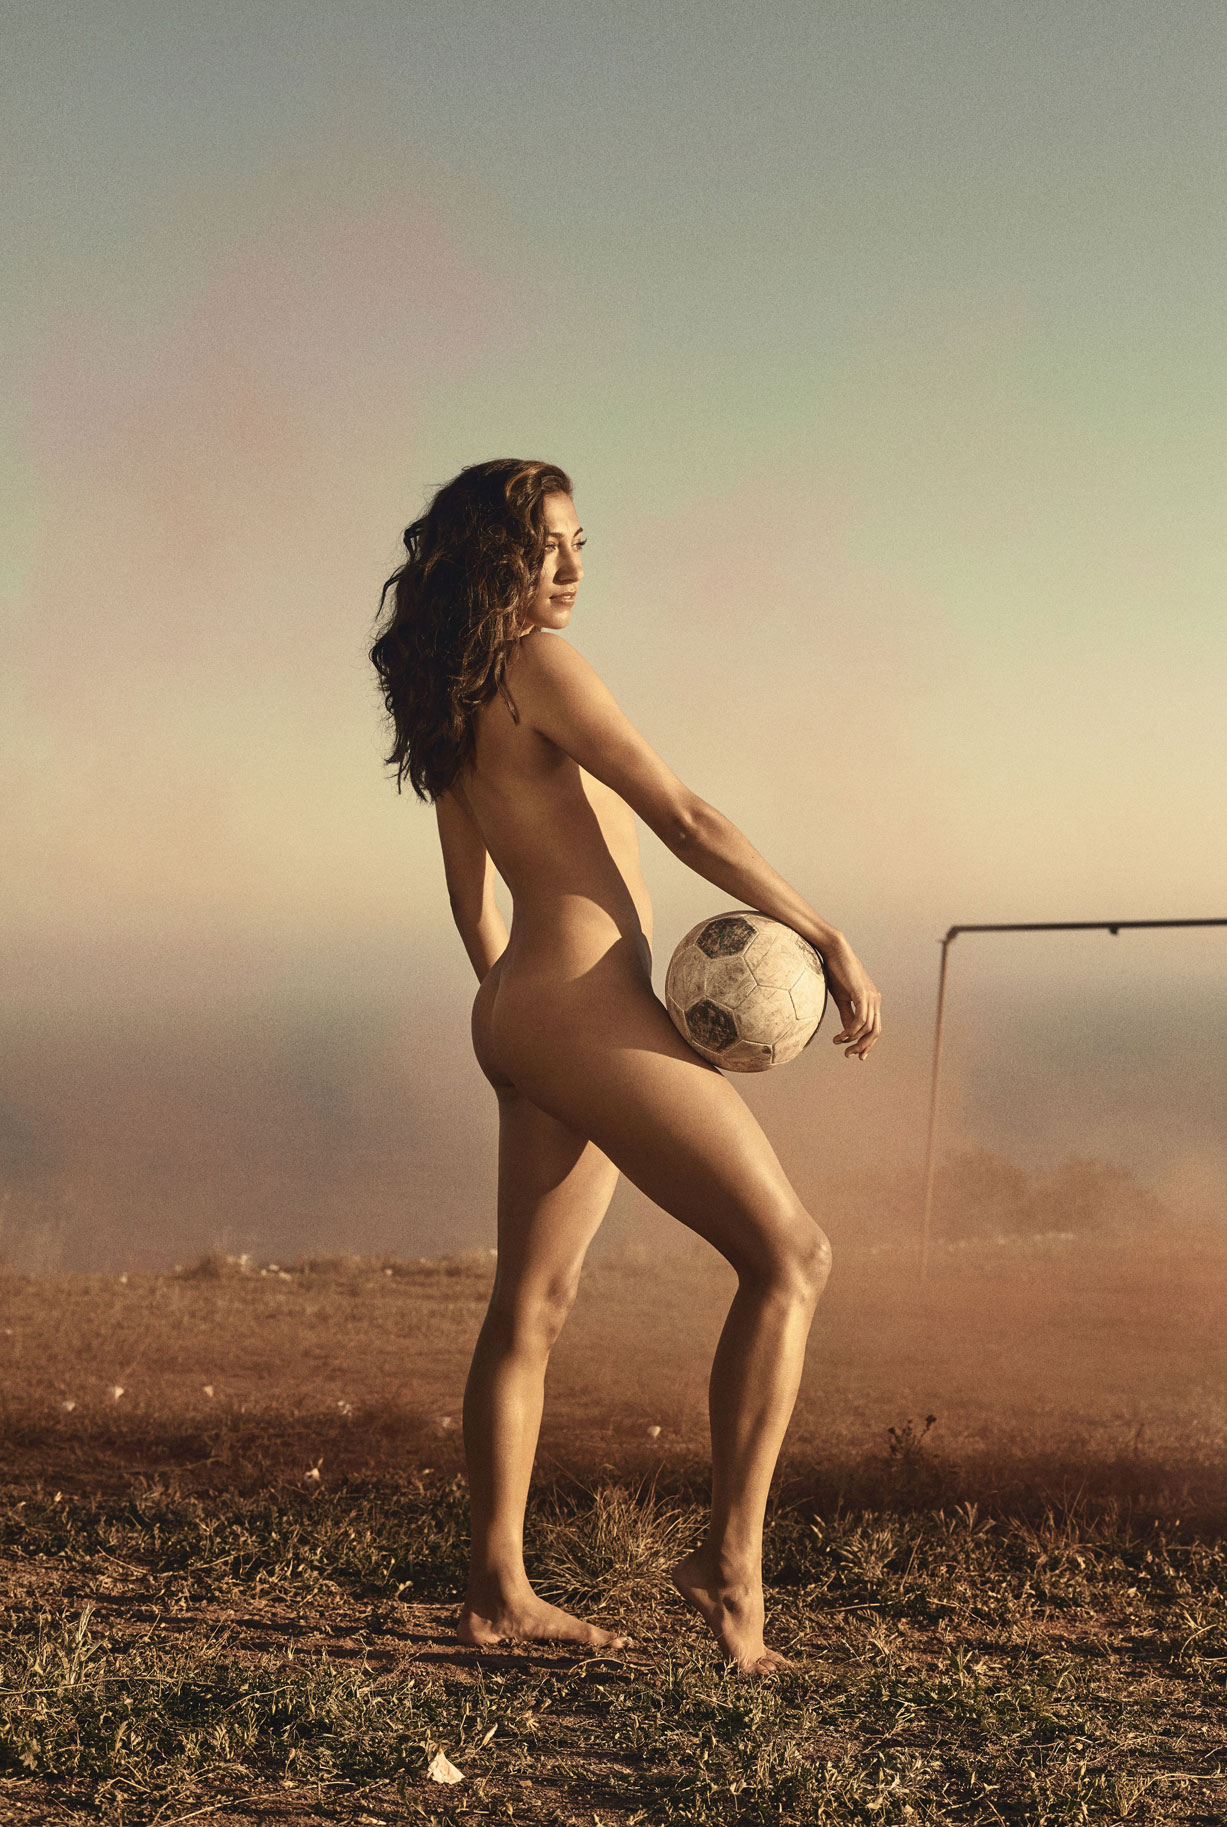 ESPN Magazine The Body Issue 2016 - Christen Press / Кристен Пресс - Культ тела журнала ESPN